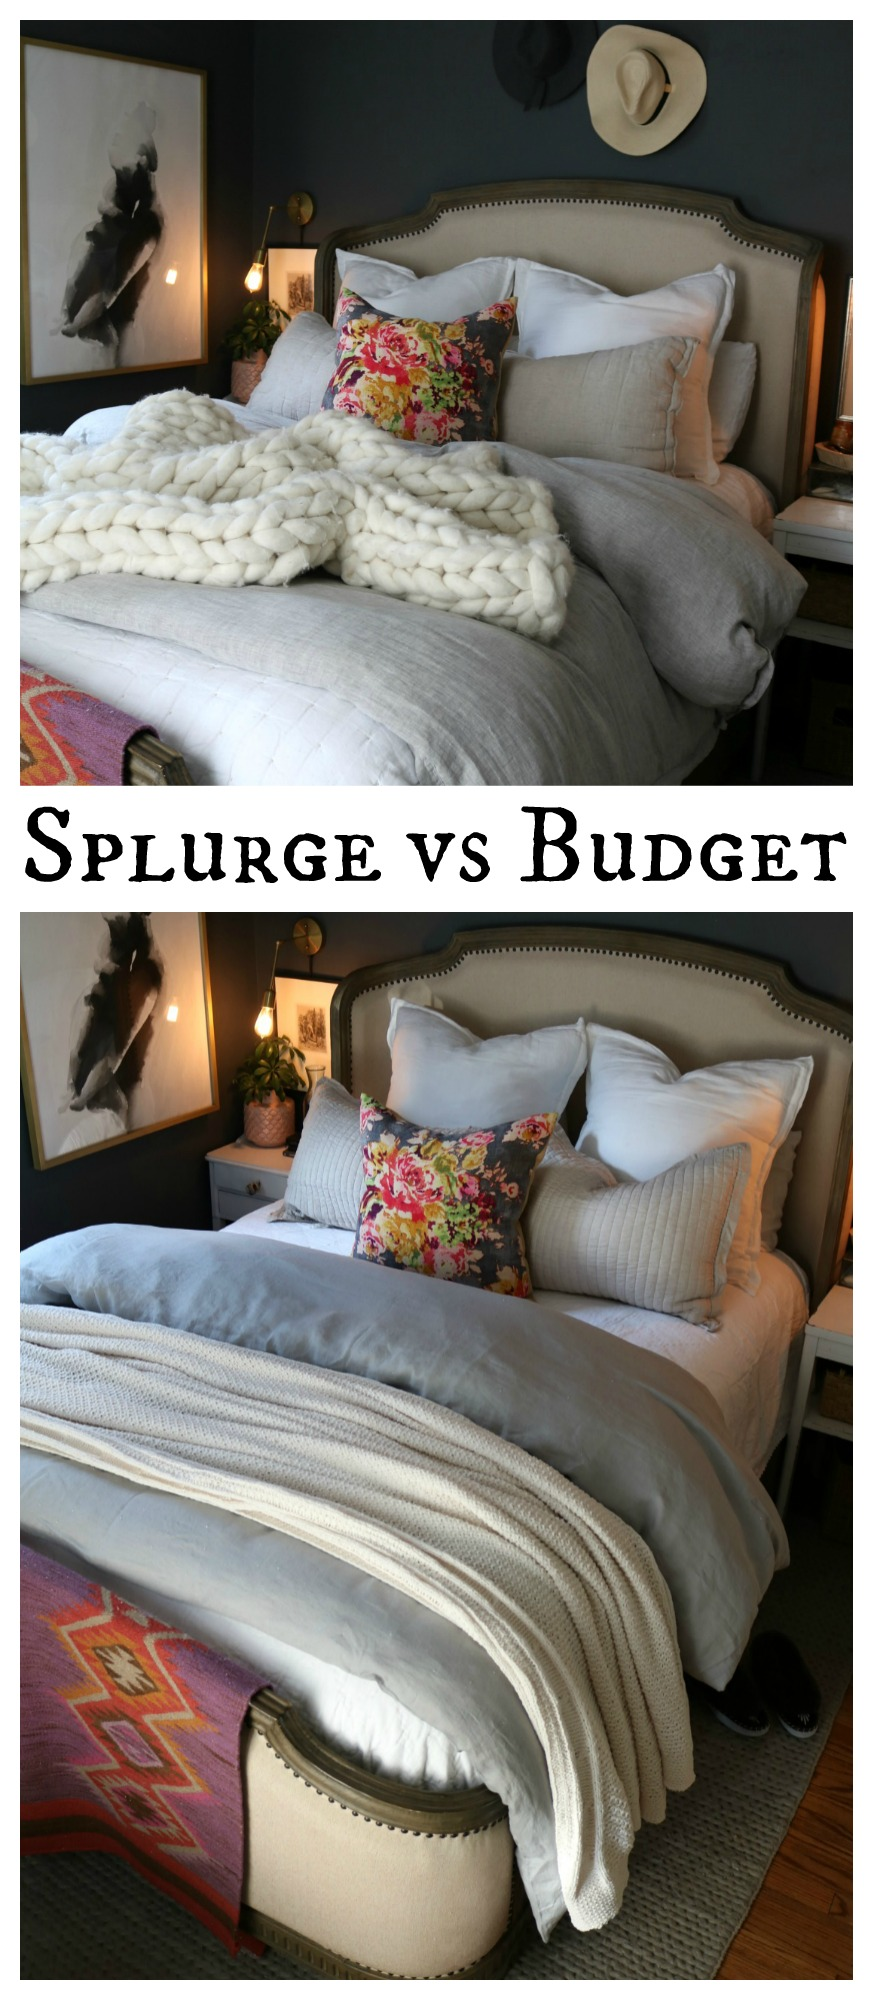 Splurge vs Budget Bedding- Bedding Two Ways